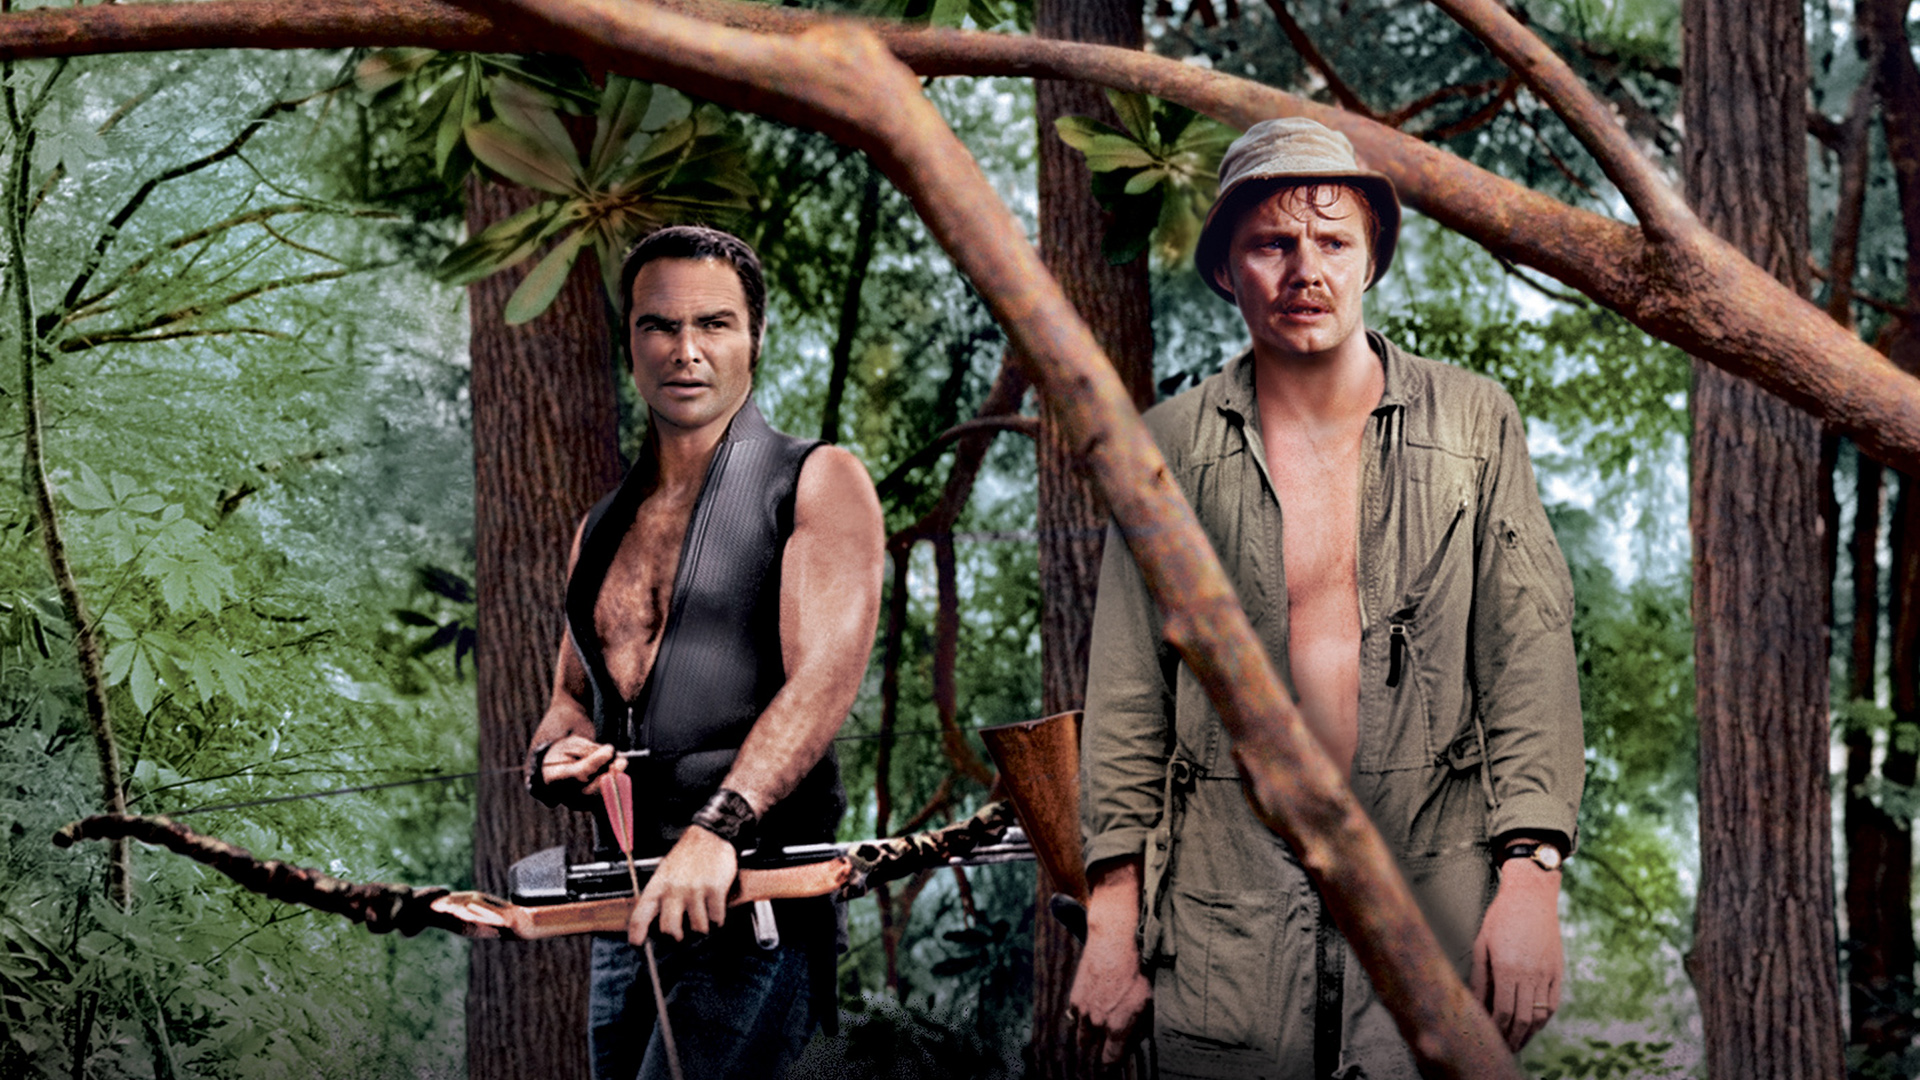 Deliverance HD Wallpaper Background Image 1920x1080 ID 1920x1080